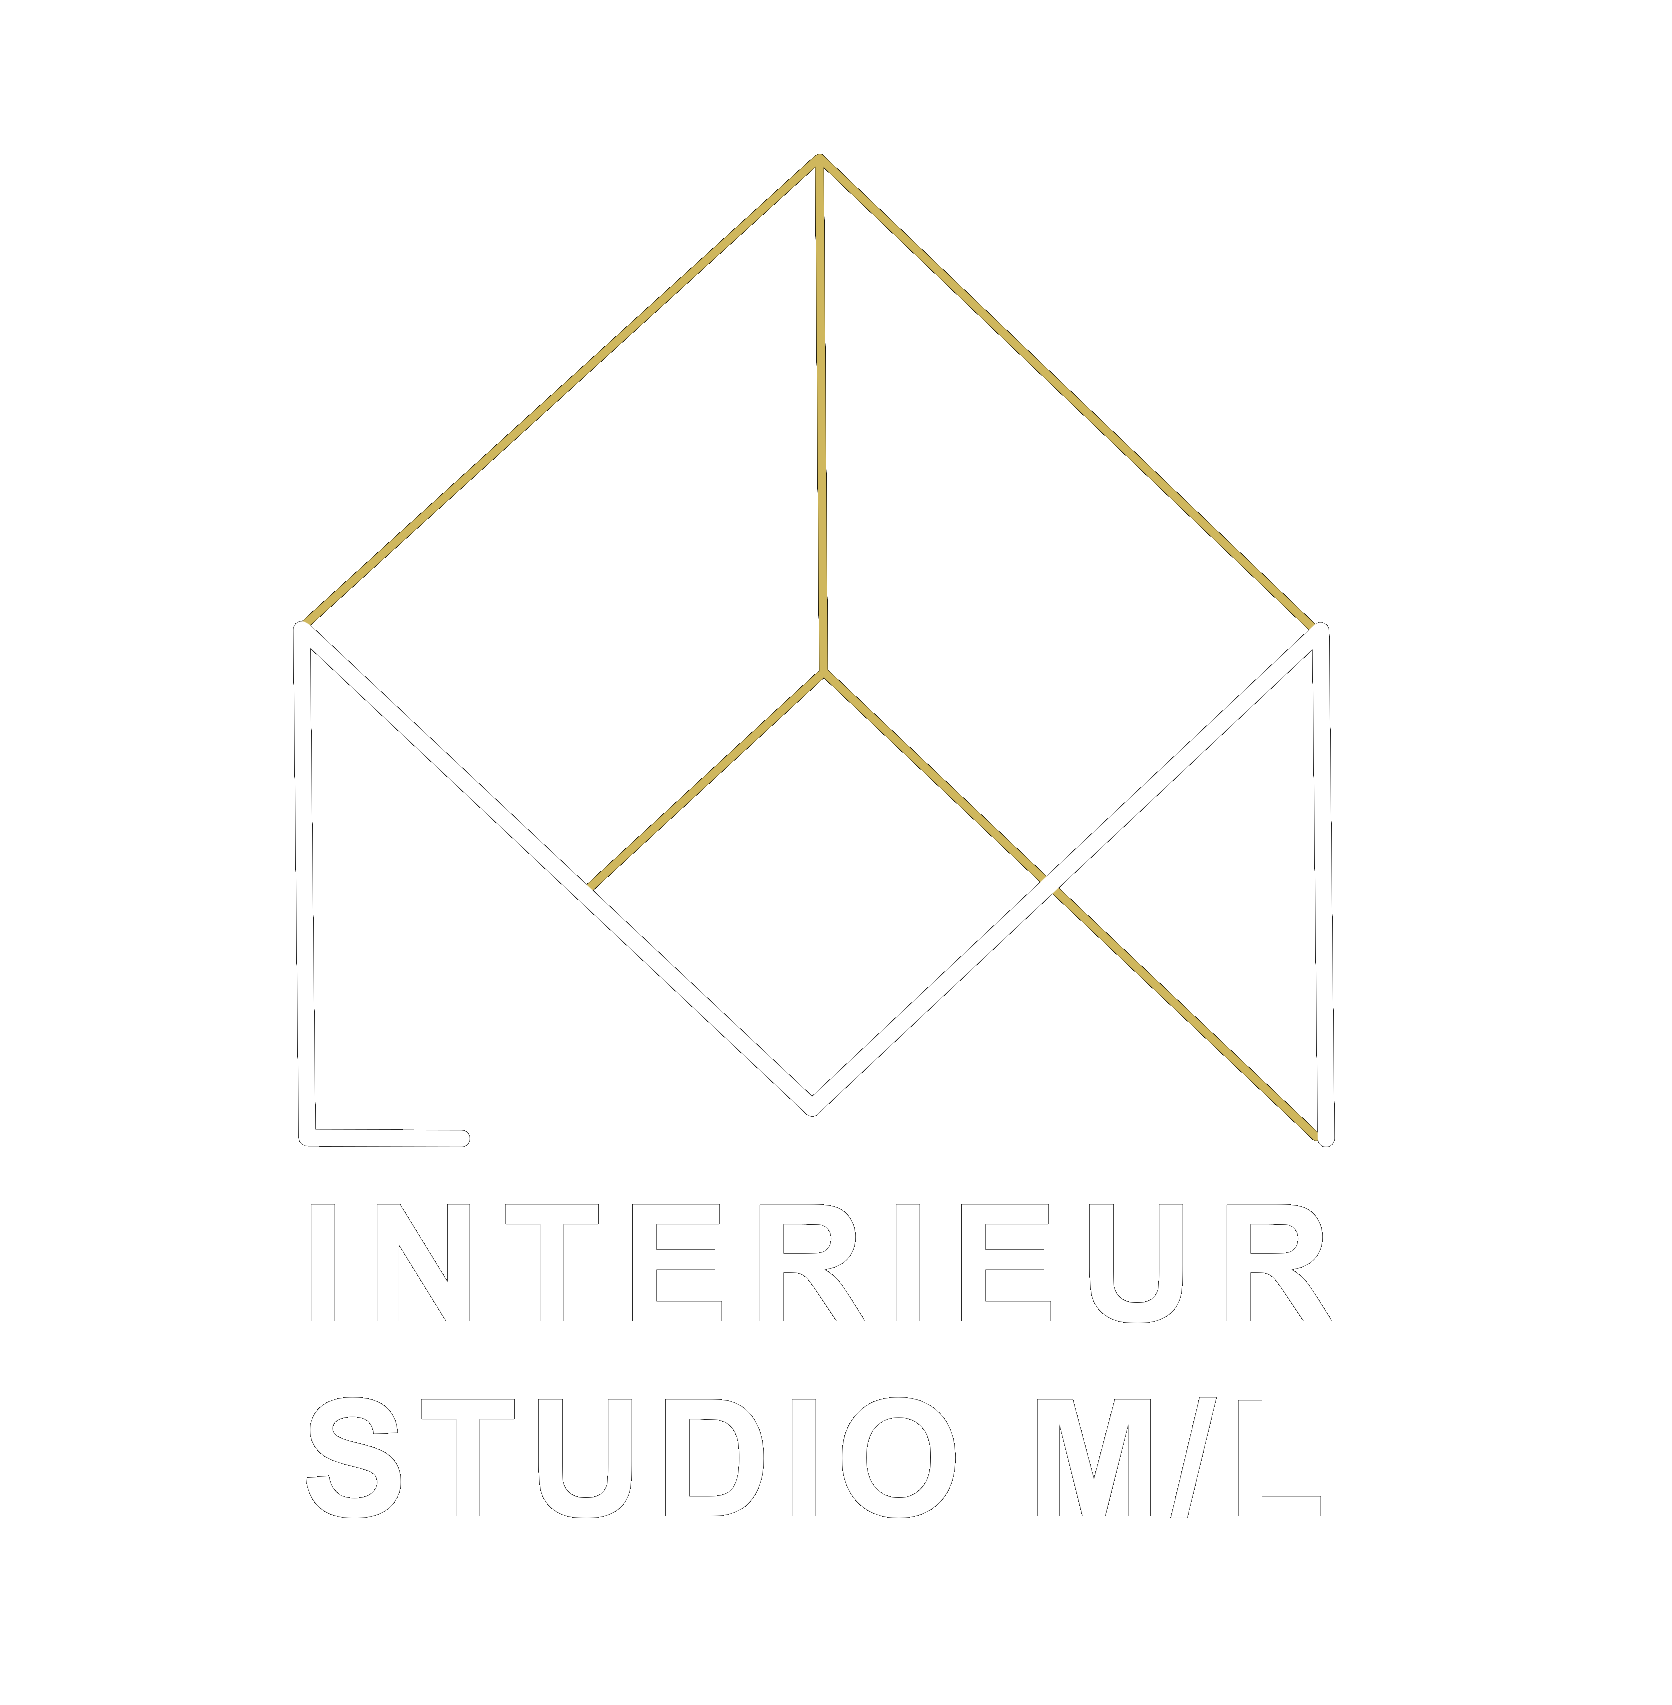 Interieurstudio M/L